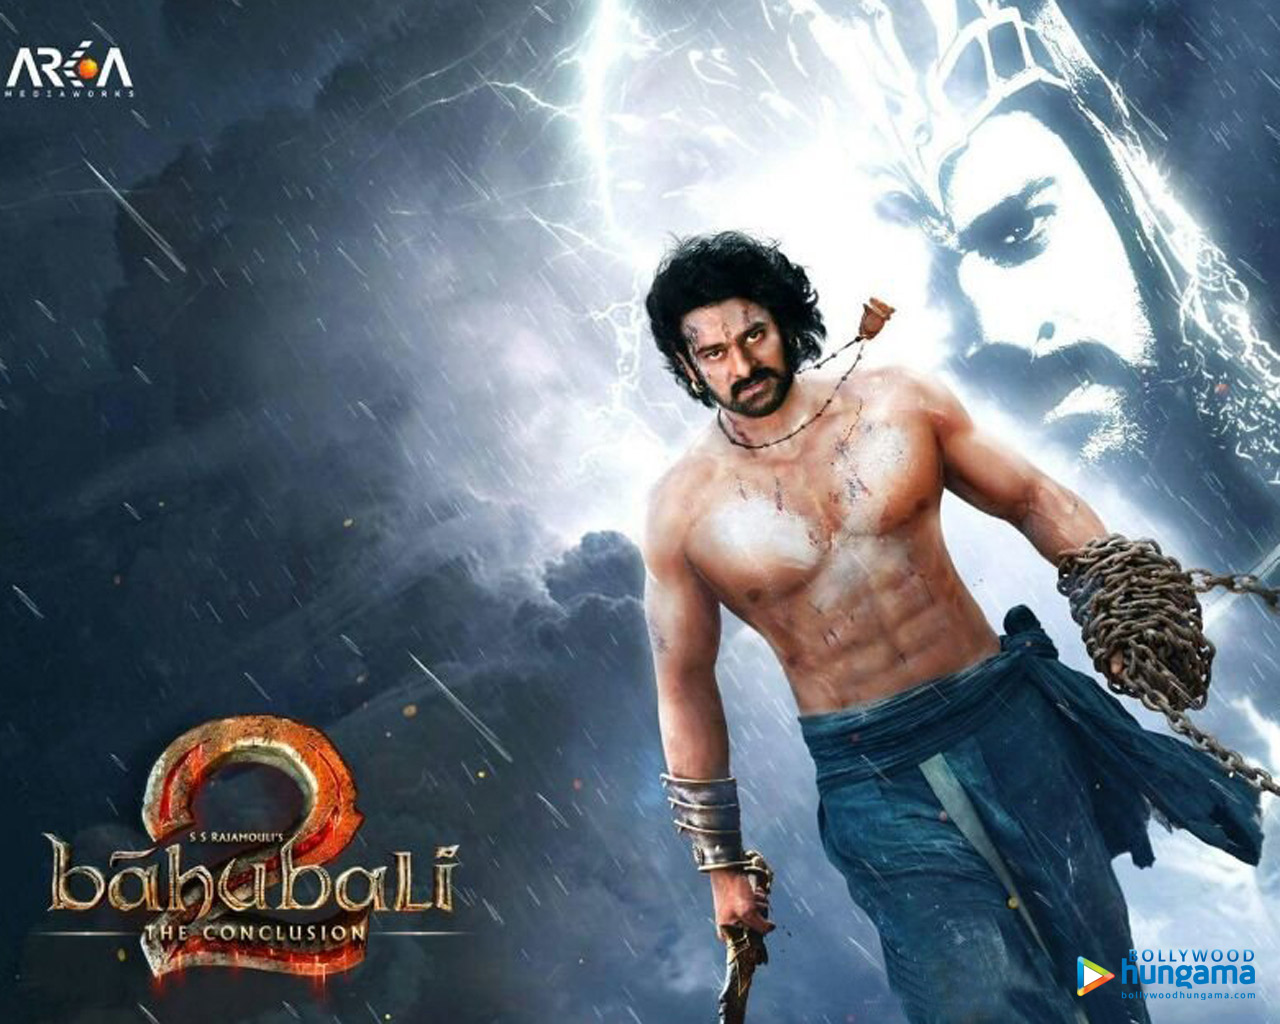 Wallpaper download bahubali 2 -  As Wallpaper